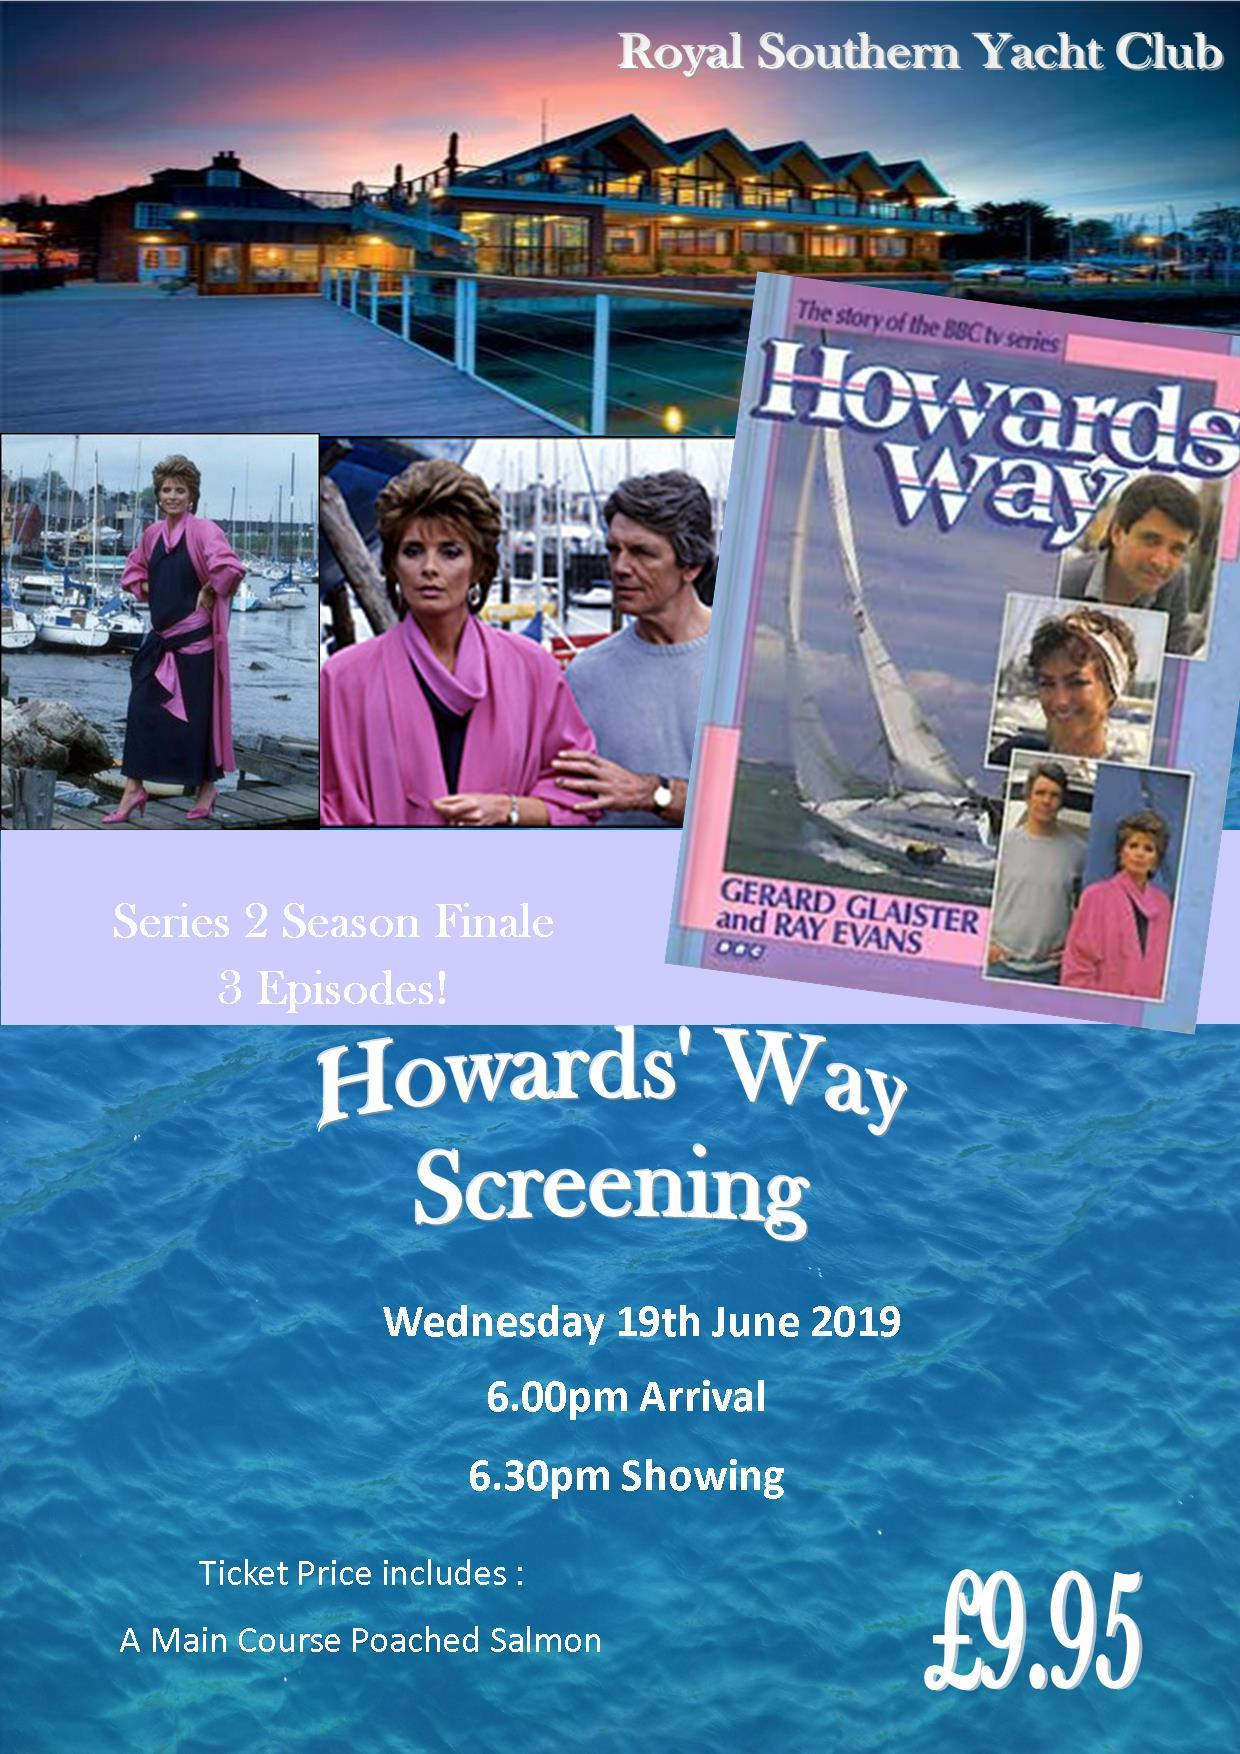 19 06 19 Howards Way Poster